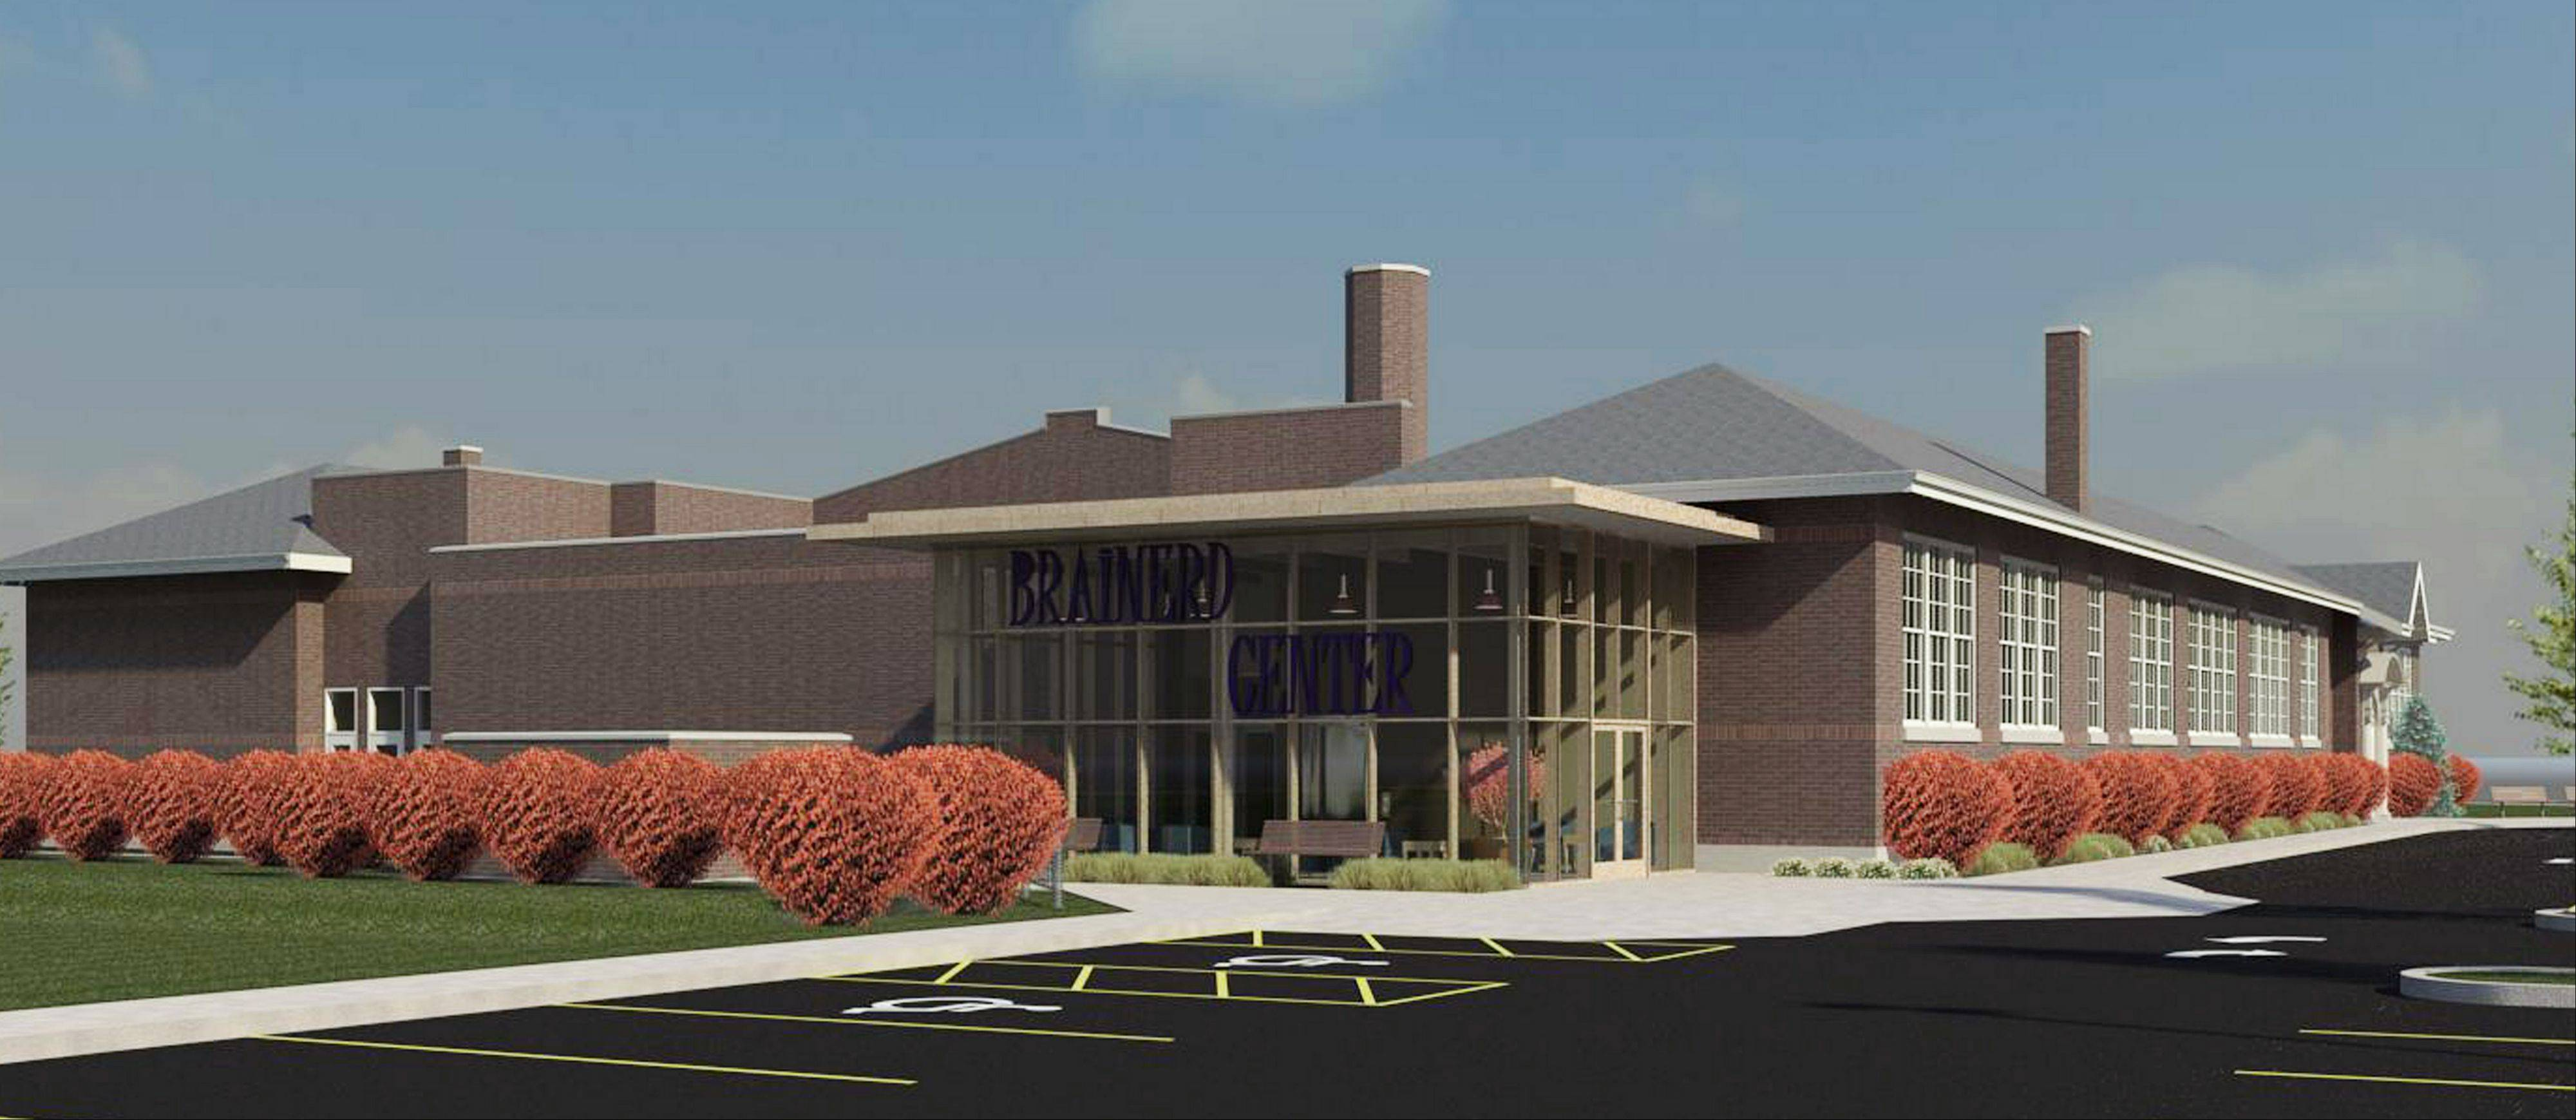 A view of the proposed Brainerd Community Center in Libertyville.